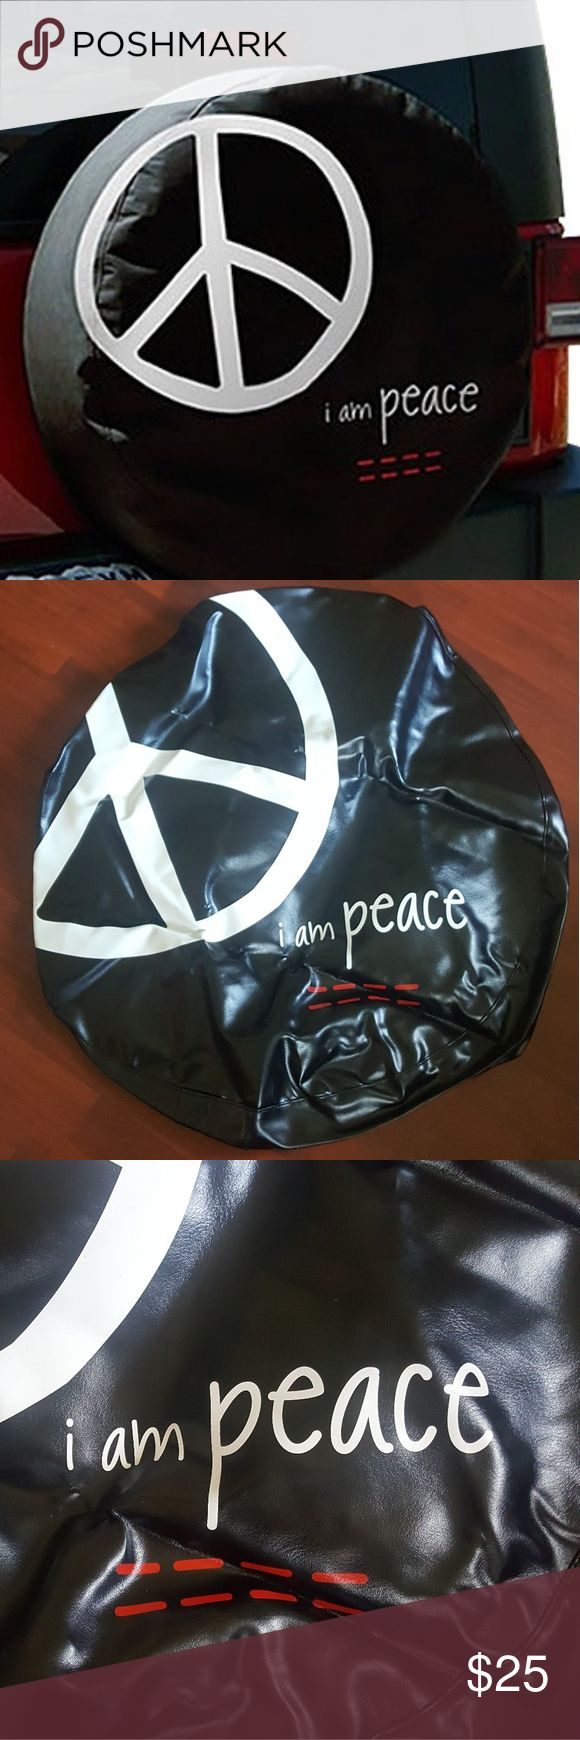 """Peace Love World Black Tire Cover W/ GIFT Peace Love World """"I am Peace"""" Black Tire Cover 29"""".   Size M fits 29"""" tires: Jeep Liberty, may fit the Honda CR-V.                               W/GIFT: 3 Bracelets PLW or 1 PLW sticker of your choice Peace Love World Accessories"""